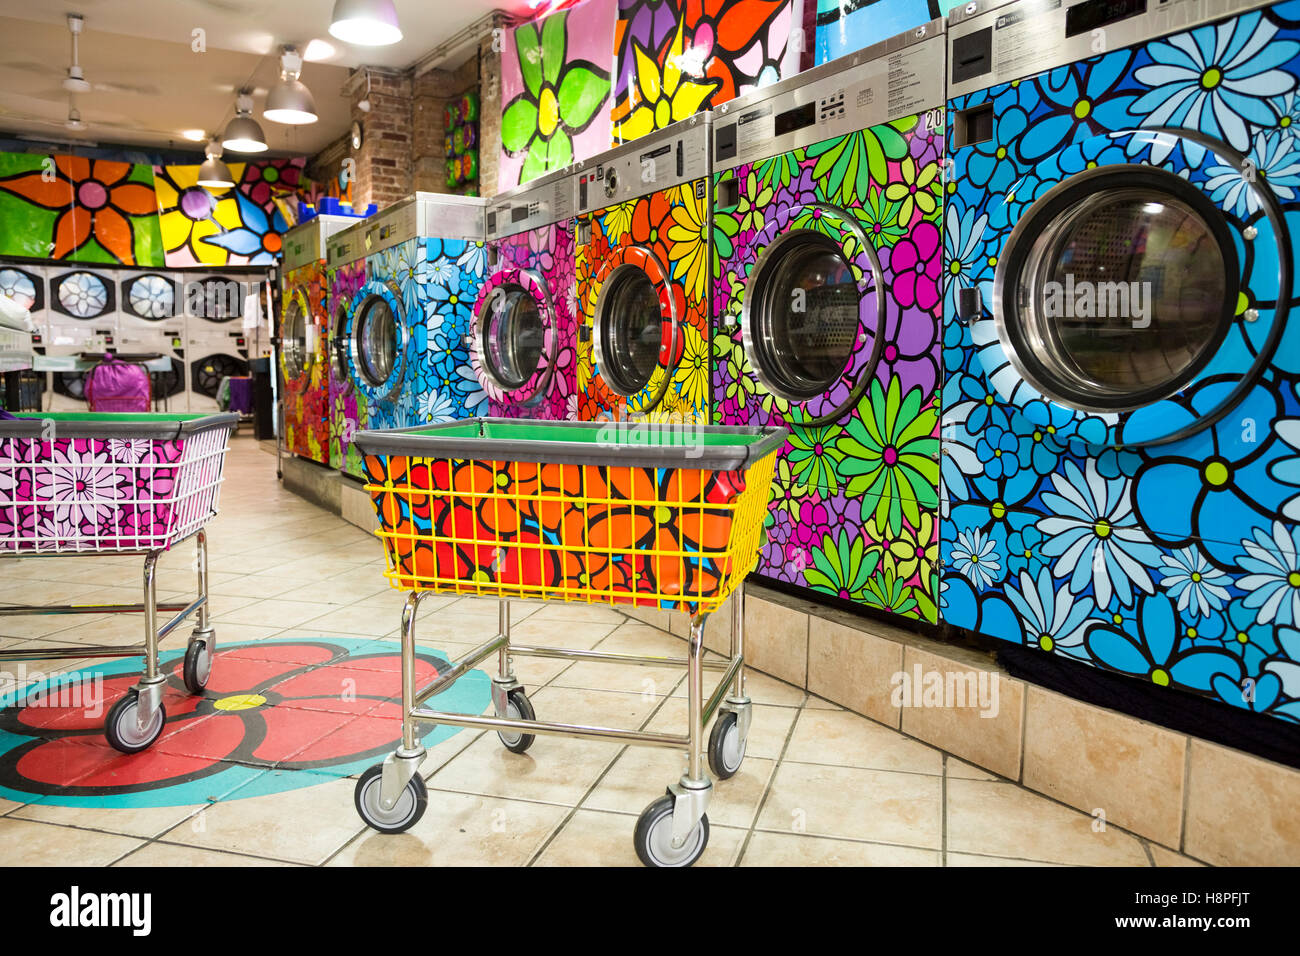 Unique retro painted washer / dryers in a local laundromat, New York City, NY, USA - Stock Image